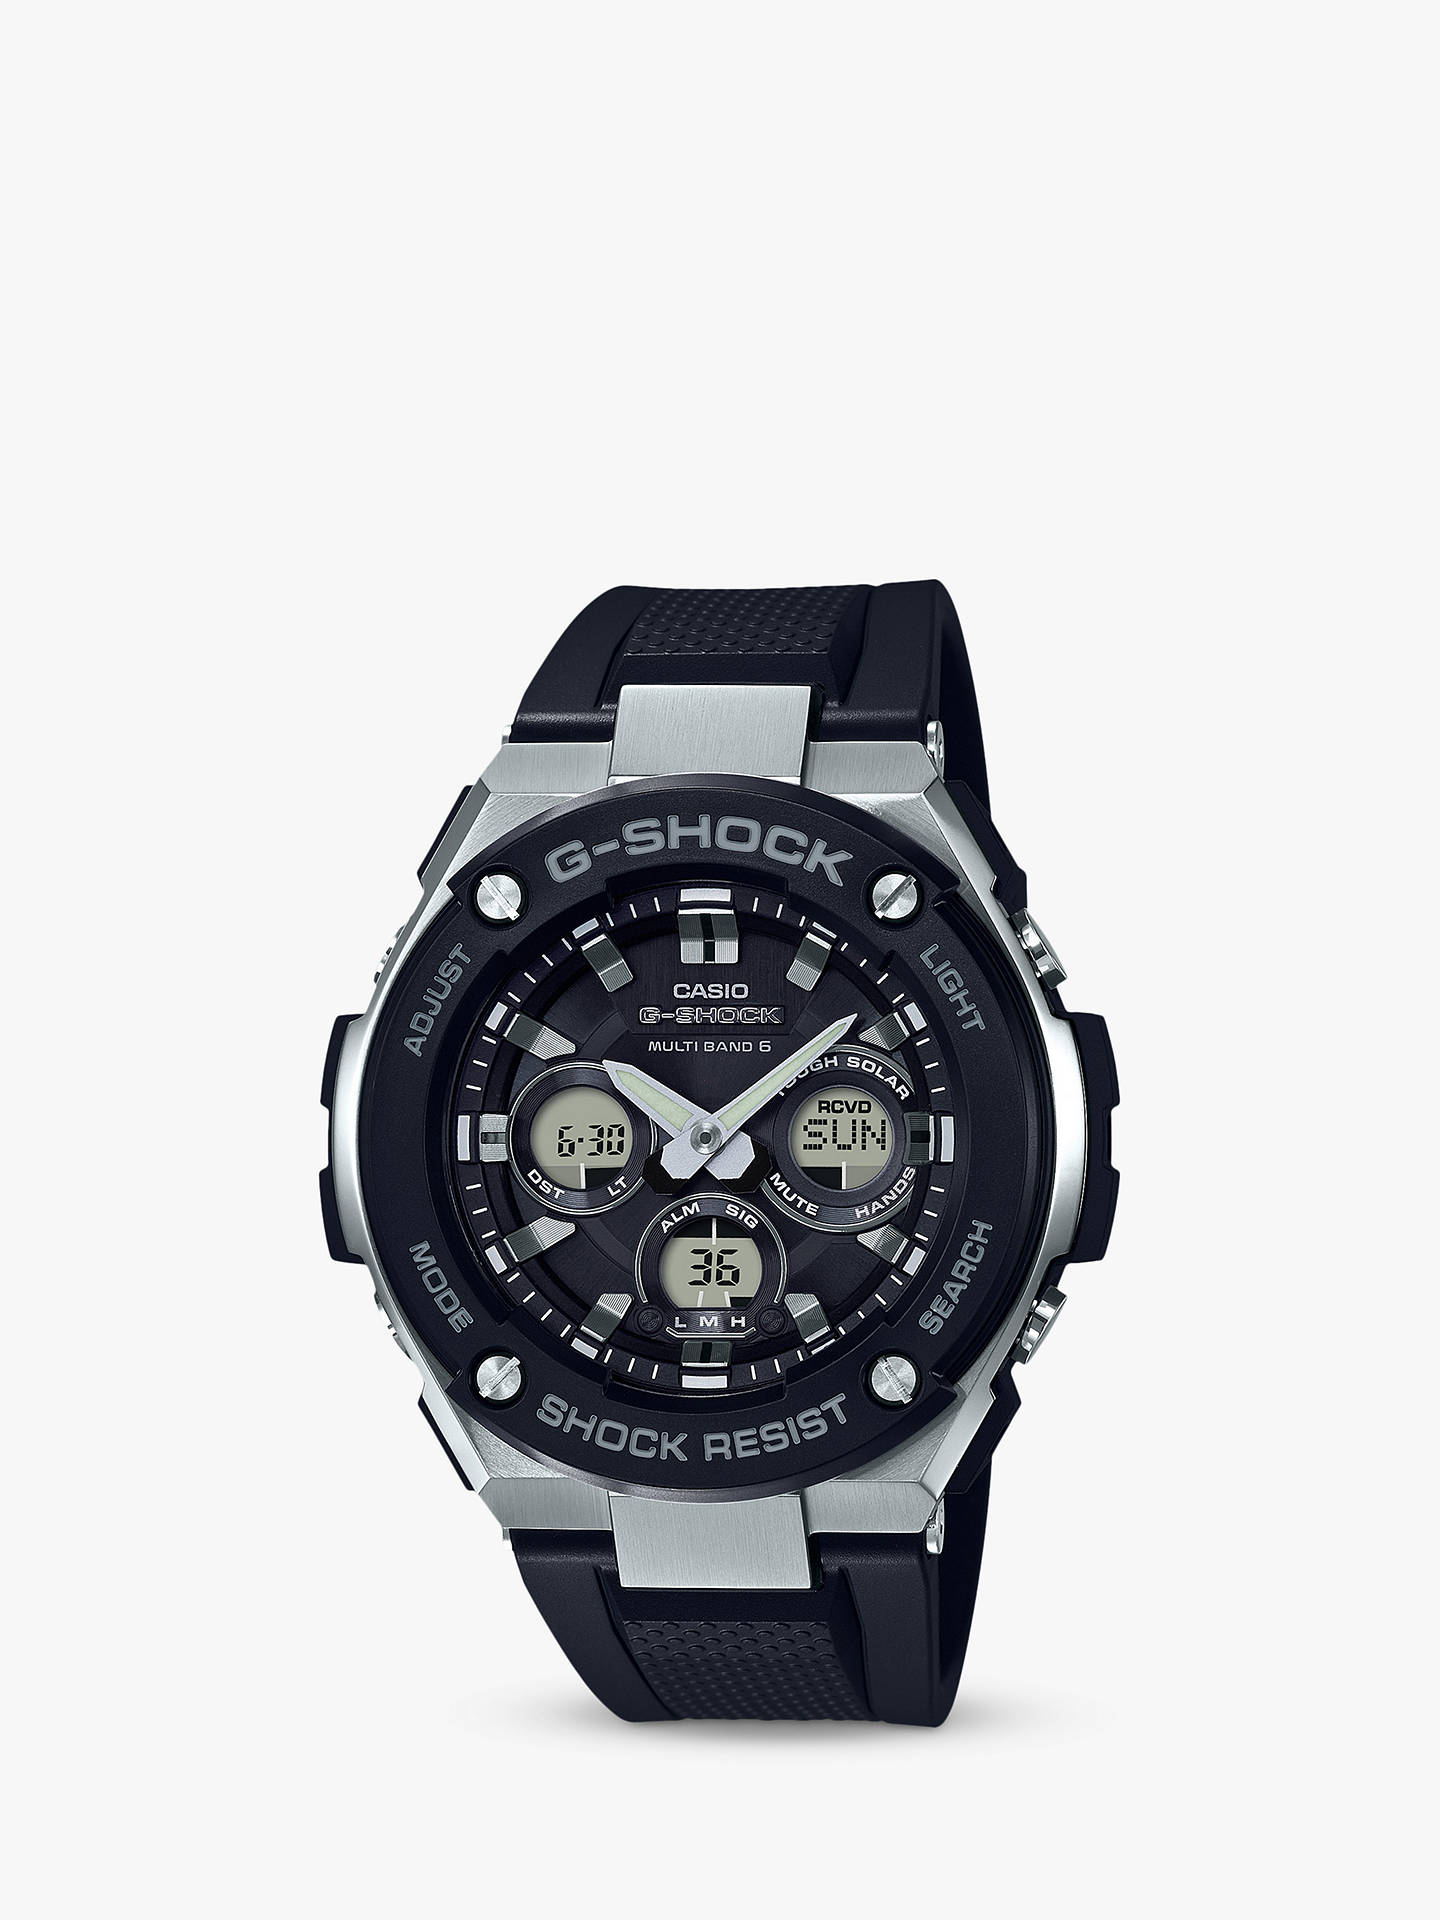 d73005bee2 Casio Men's G-Shock G-Steel Resin Strap Watch at John Lewis & Partners